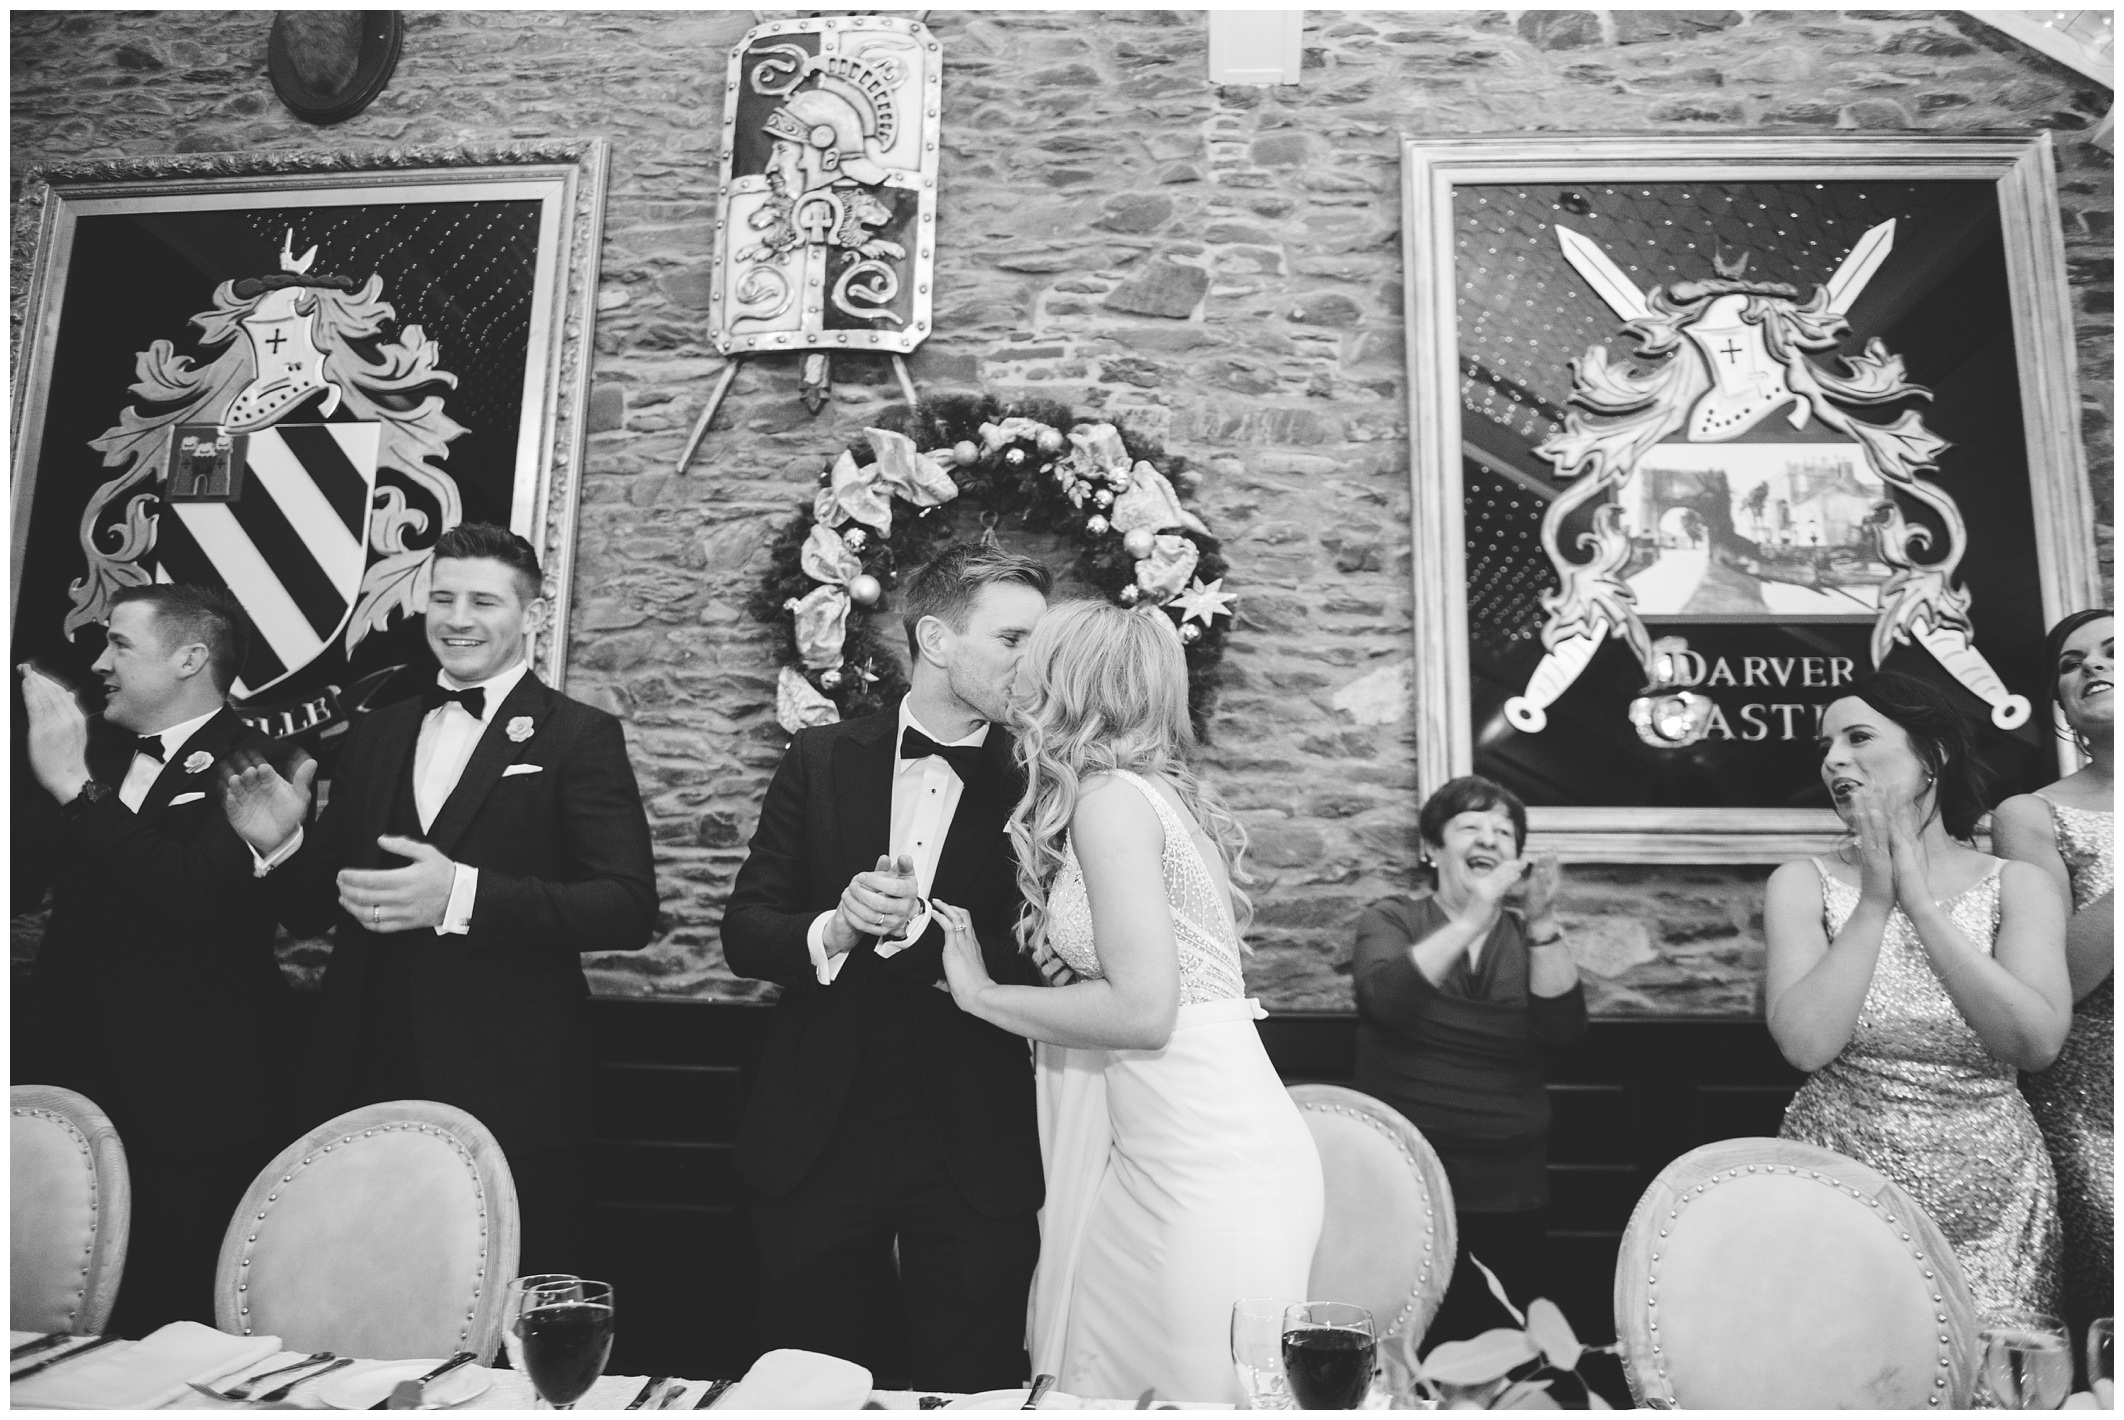 jade_donal_darver_castle_wedding_jude_browne_photography_0112.jpg